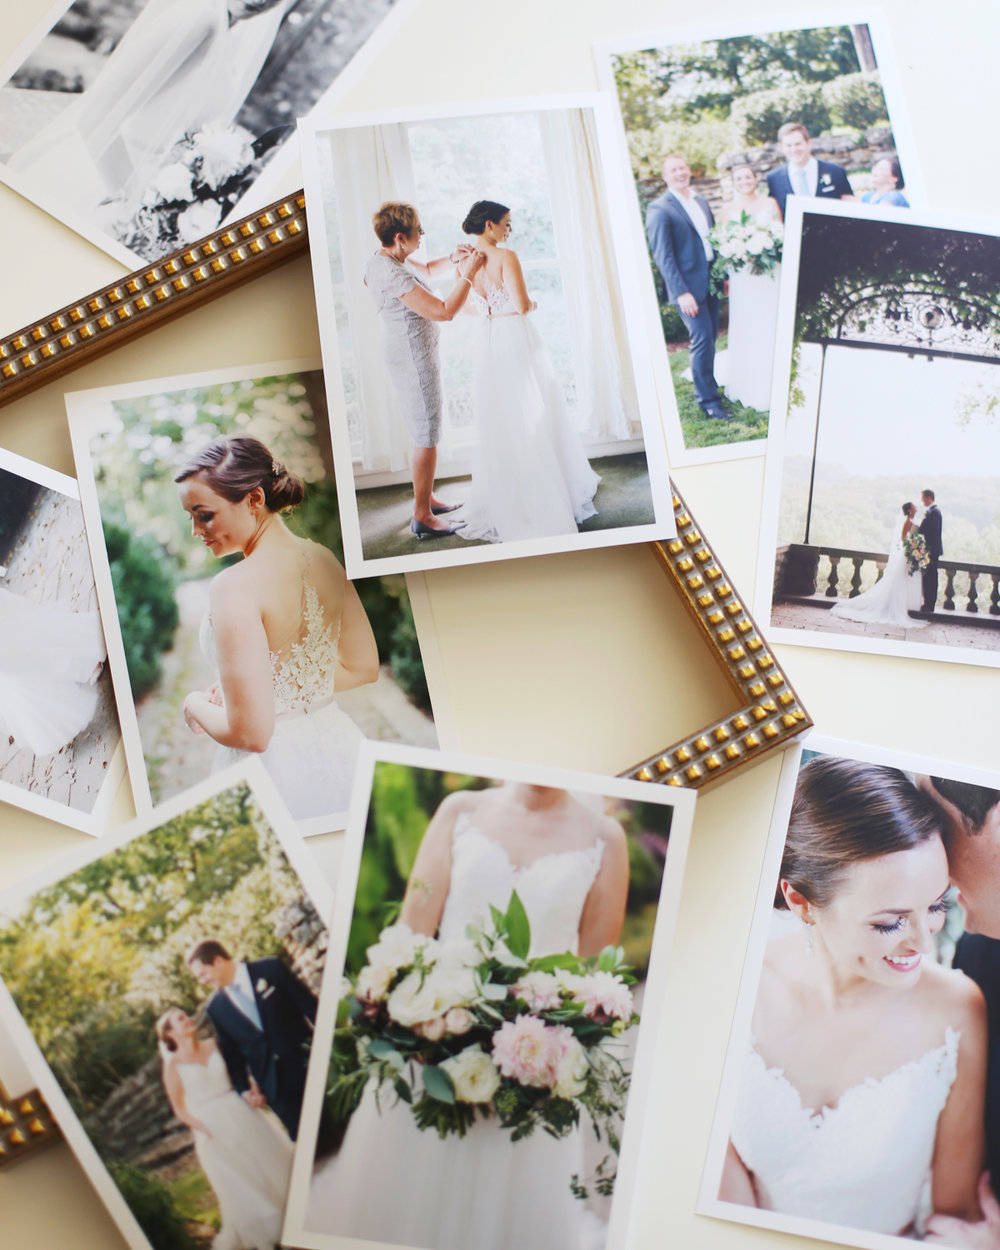 wedding-photographer-offering-albums-prints-nashville09.JPG